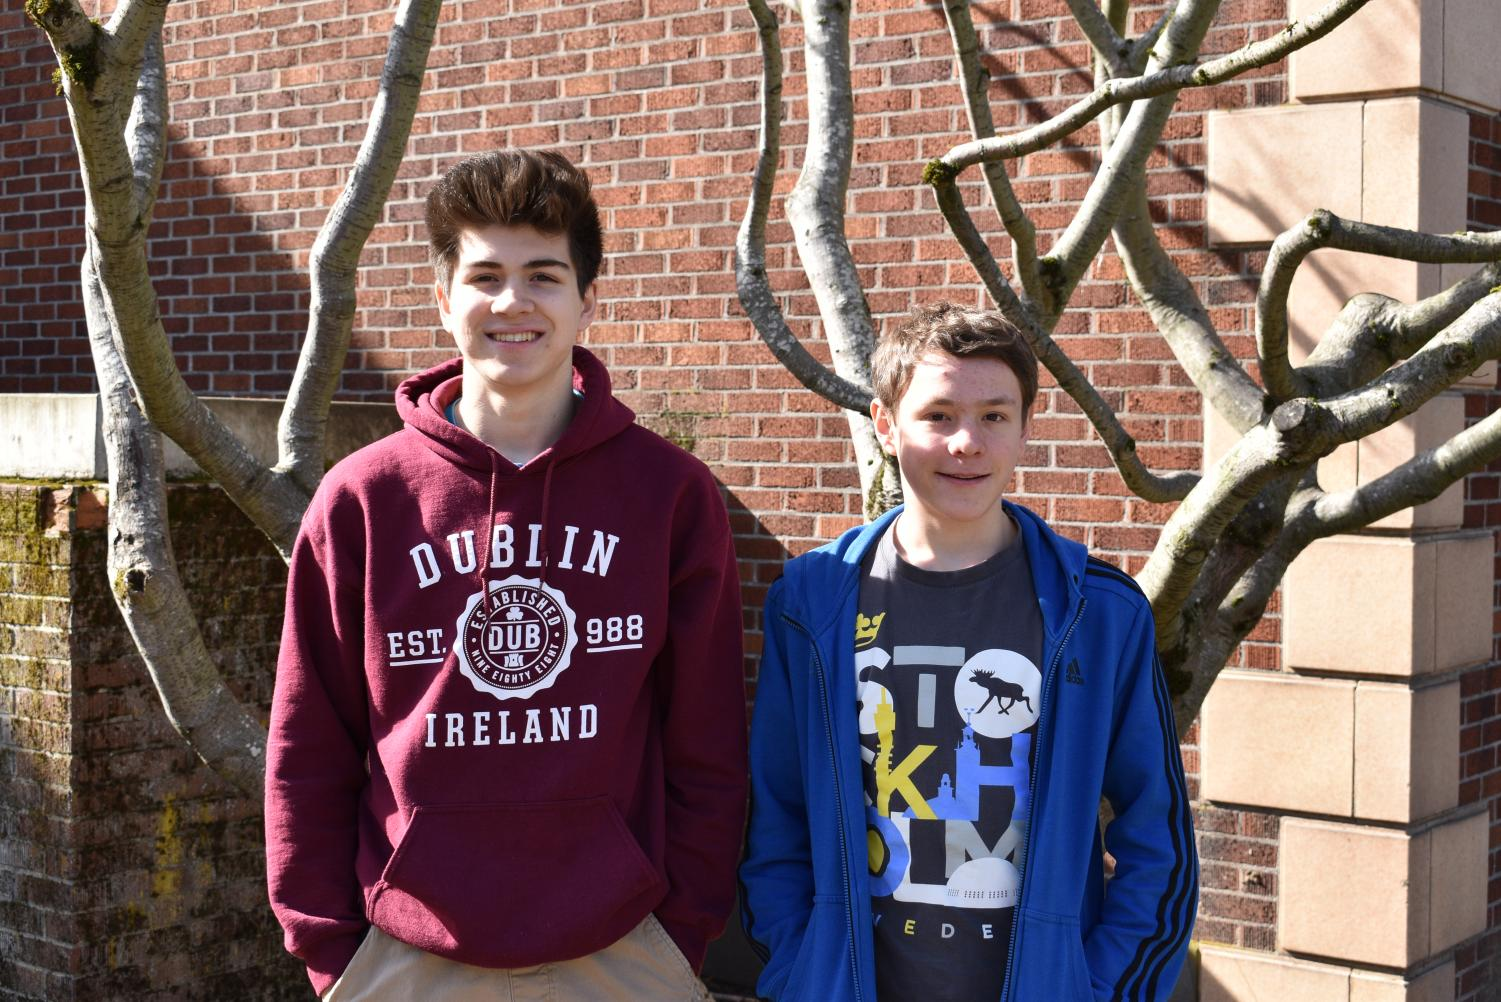 Charlie Abrams (left) and Jeremy Clark (right) pose for a picture outside Cleveland.